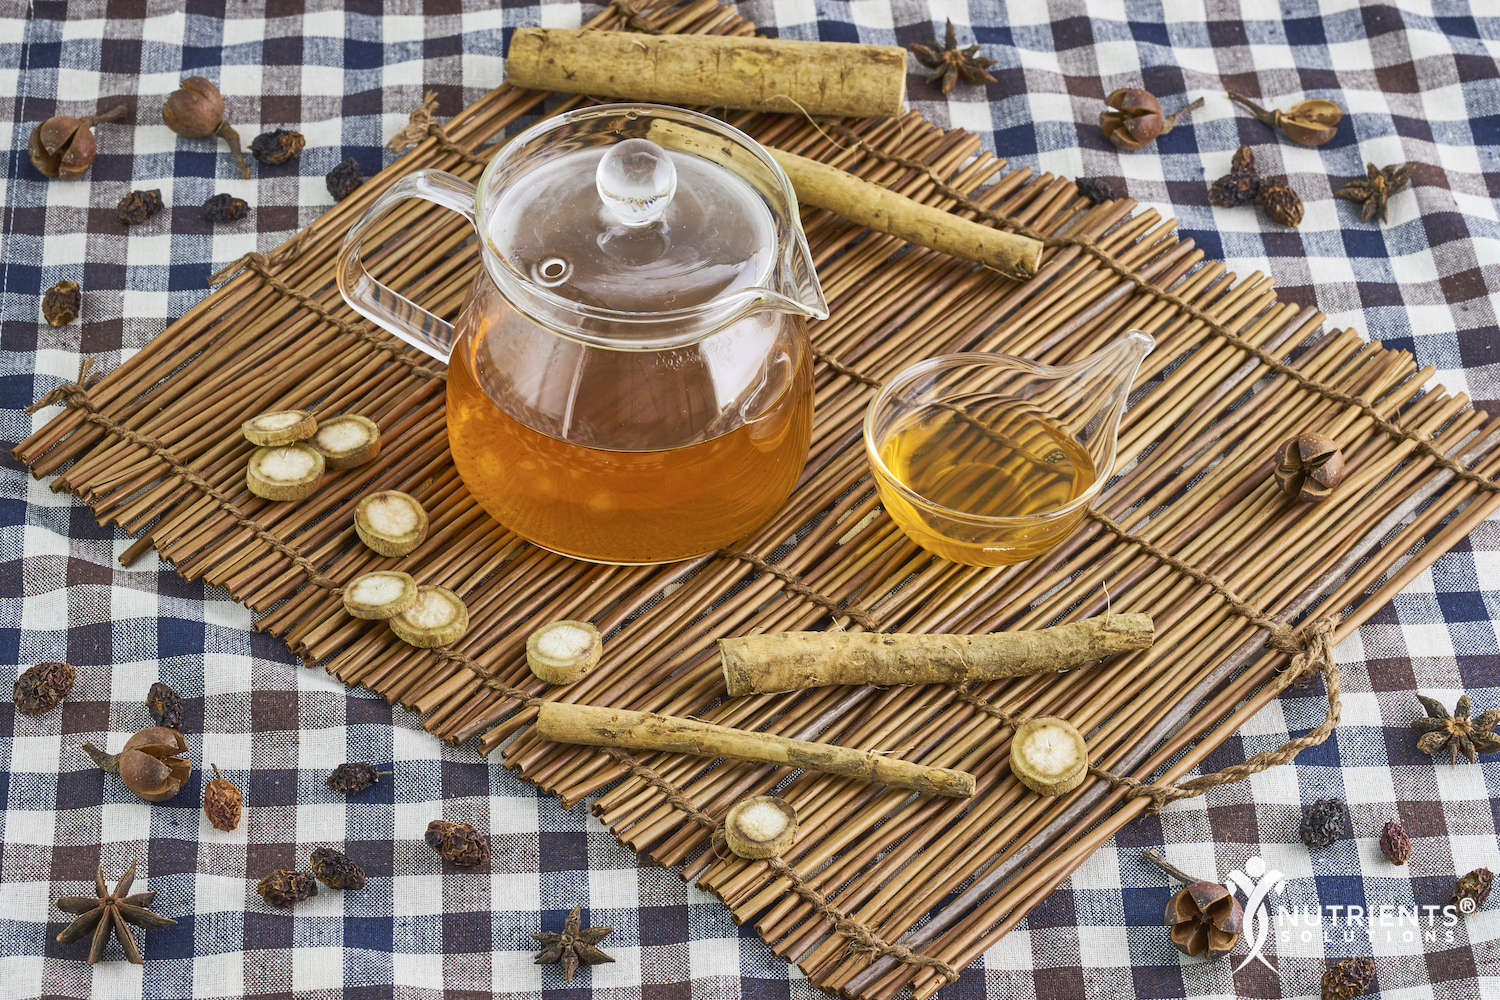 8 Benefits of Burdock Root to Detox, Fight Aging, Boost Libido and More